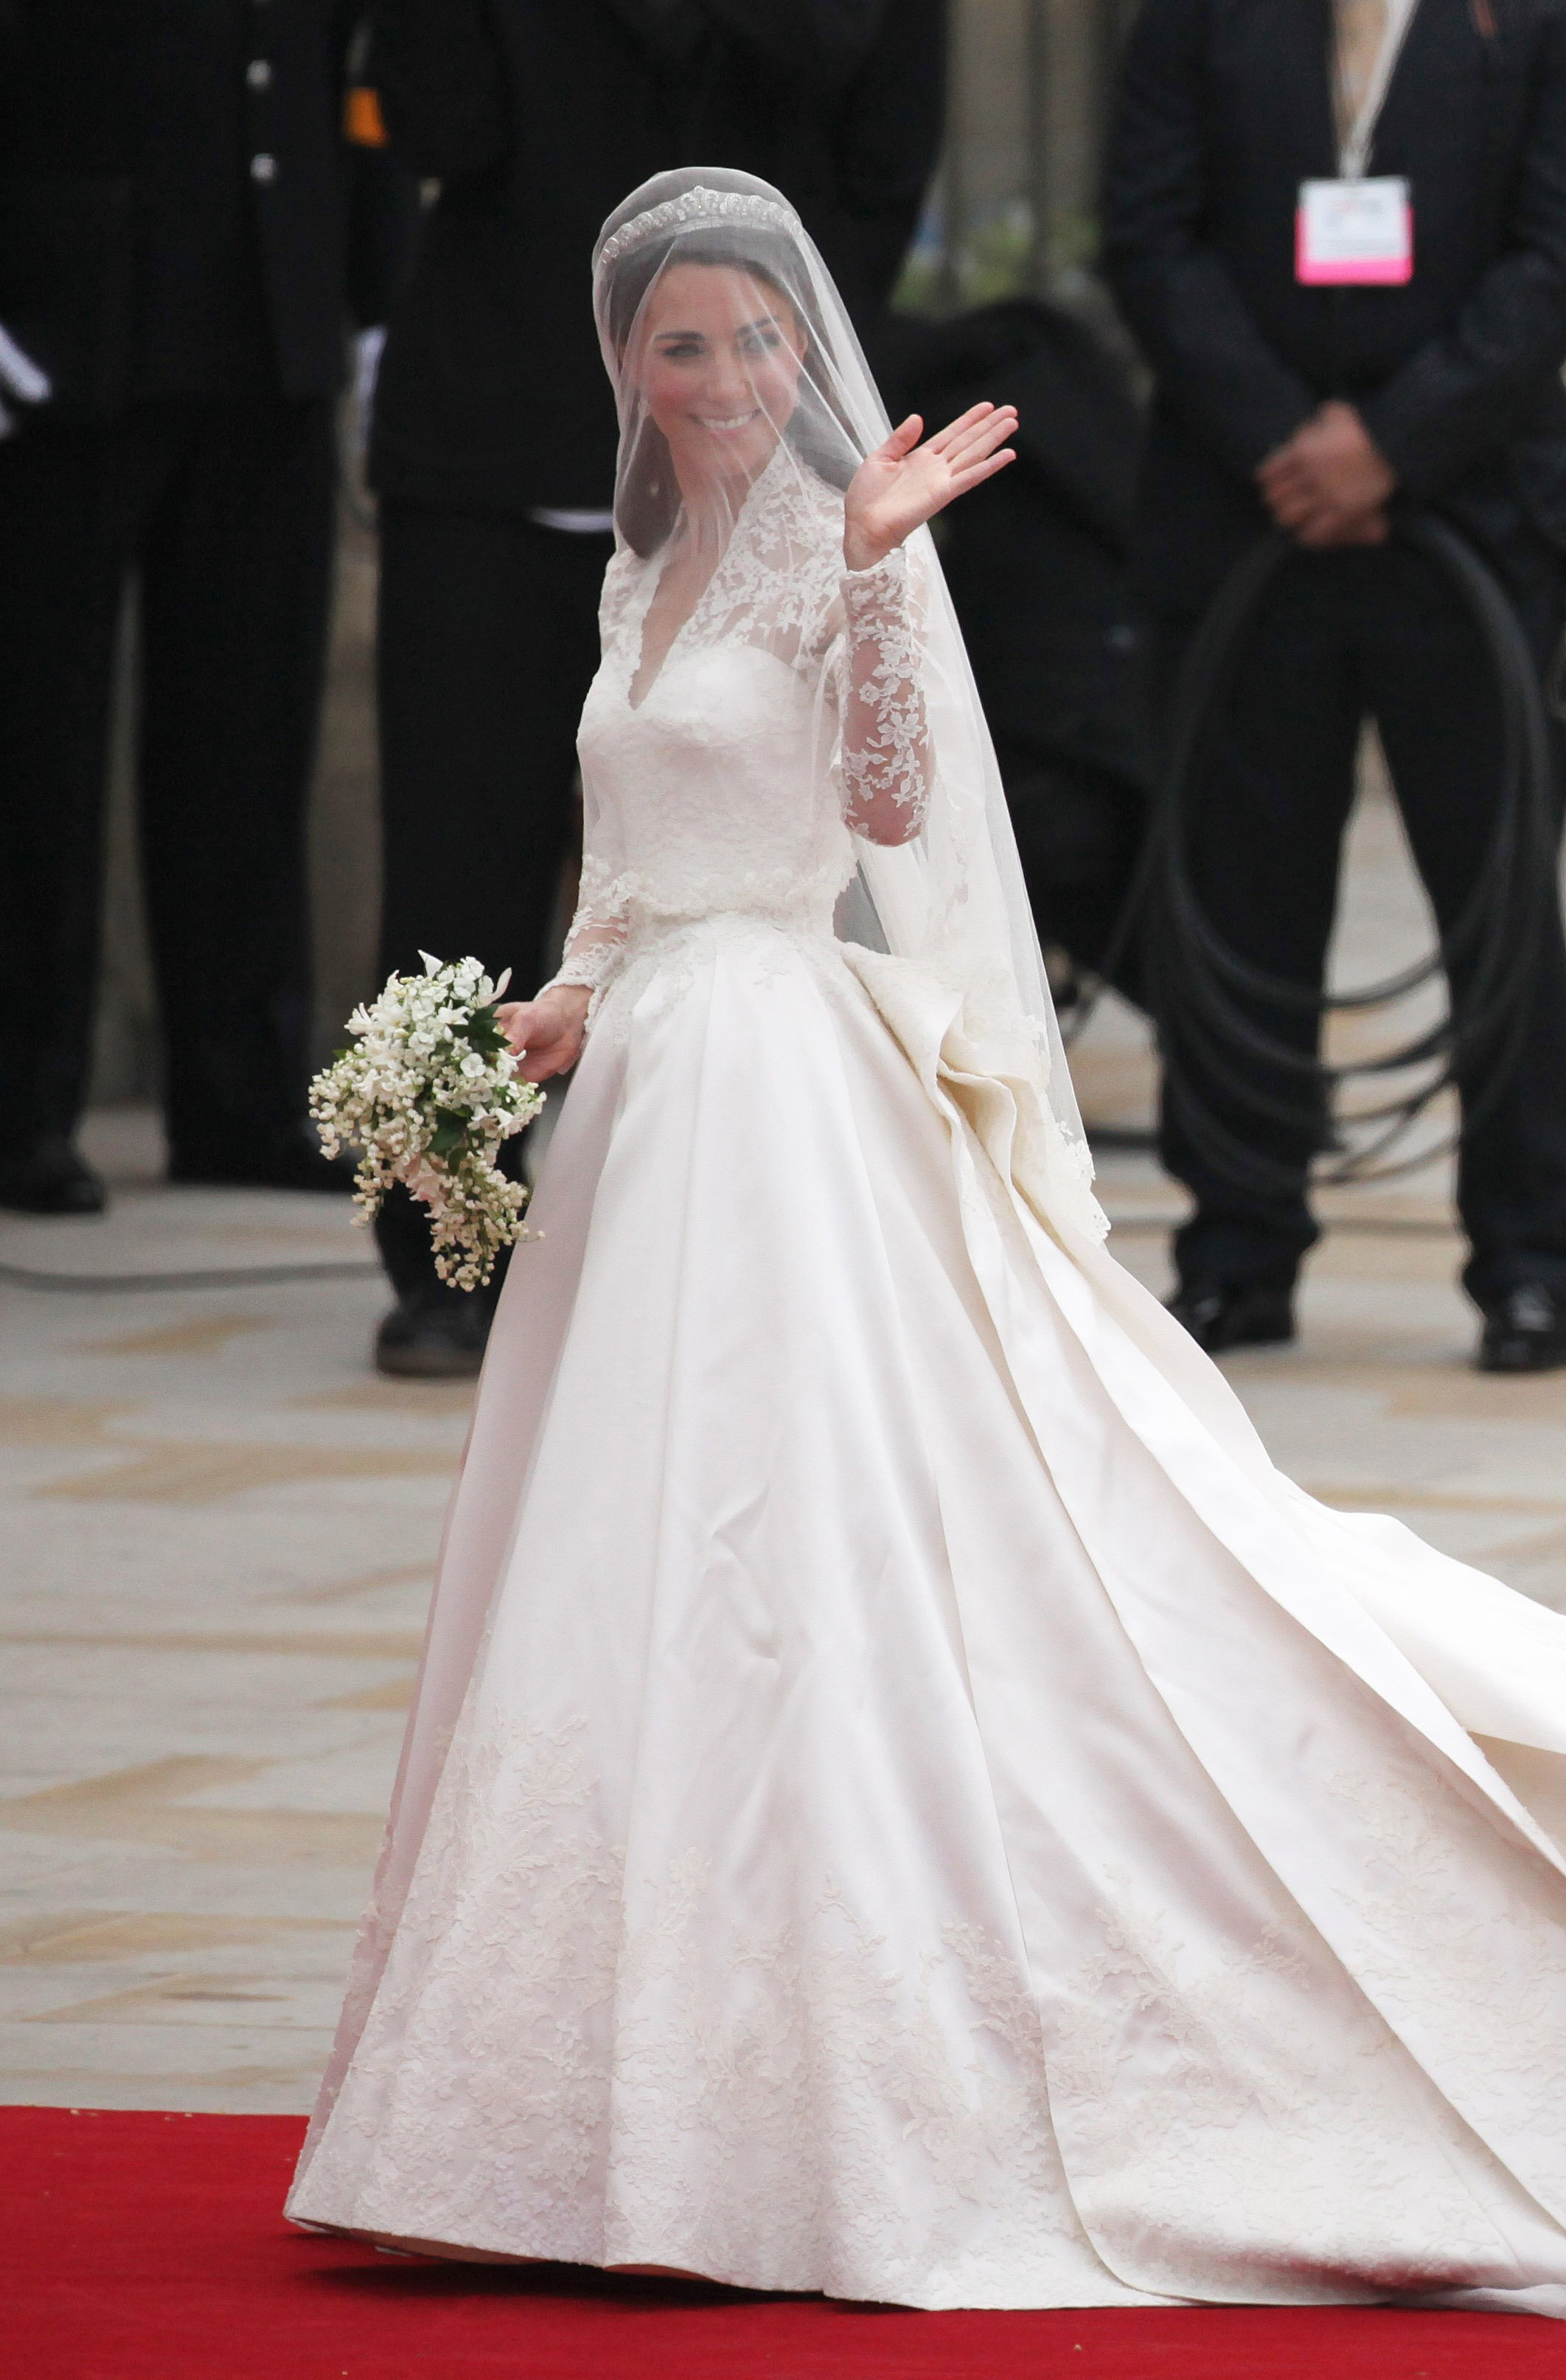 Catherine Middleton waves to the crowds as she arrives at Westmister Abbey on April 29, 2011. | Photo: GettyImages